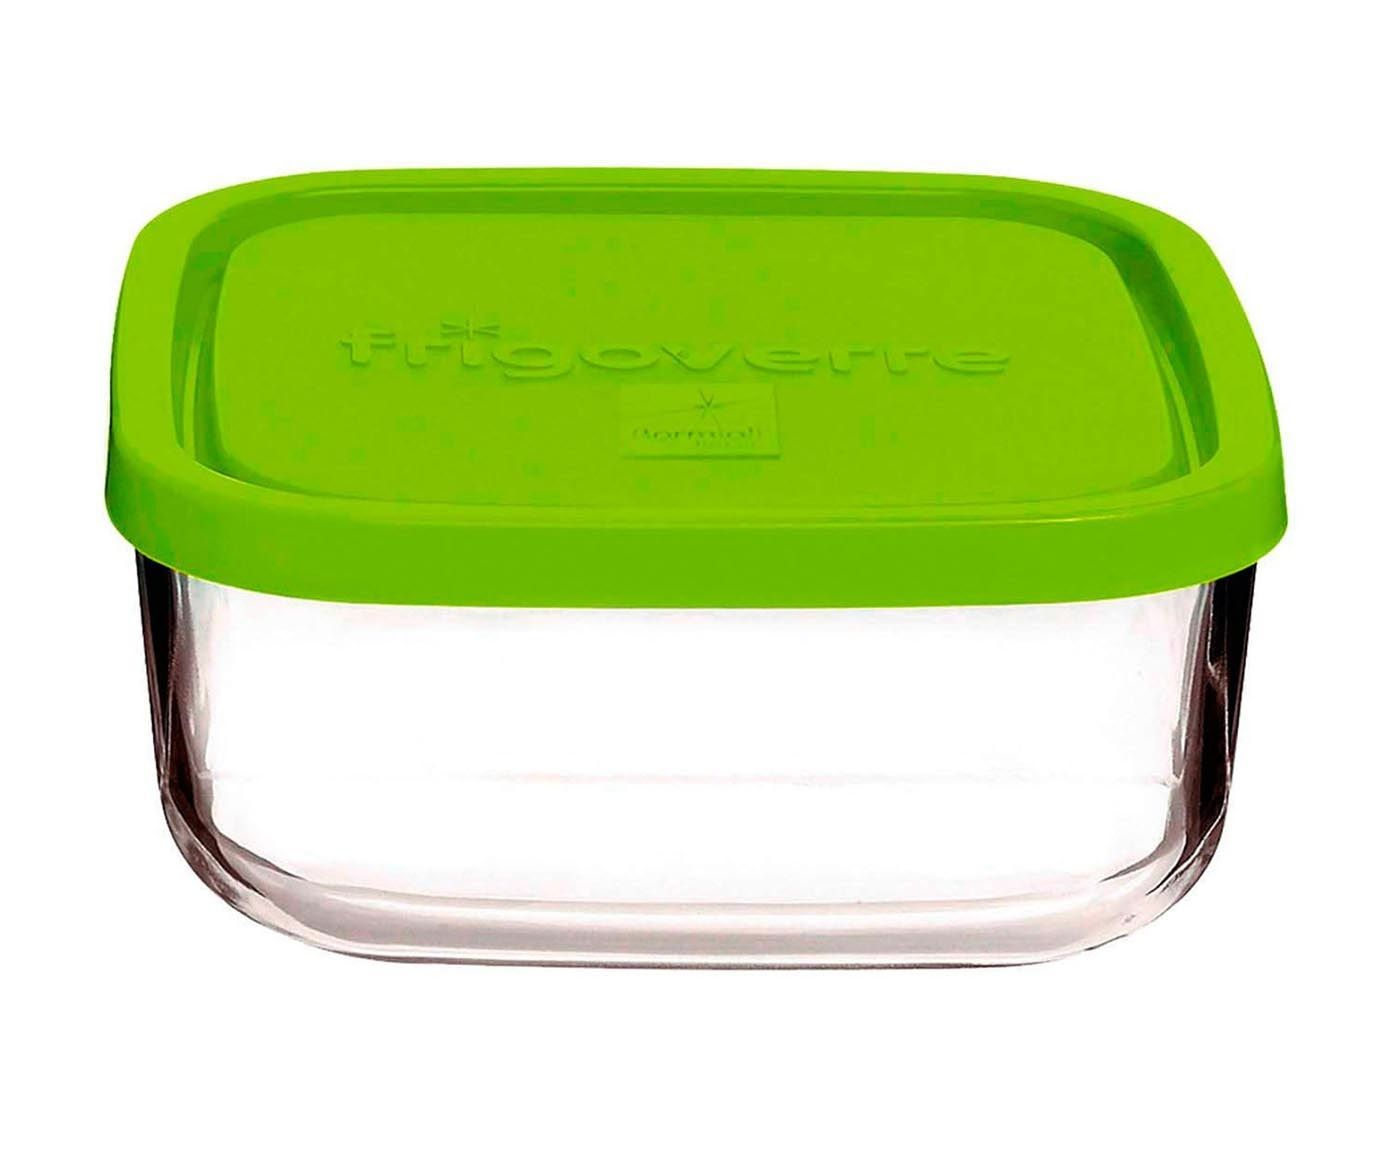 Pote frigoverre - 750ml | Westwing.com.br